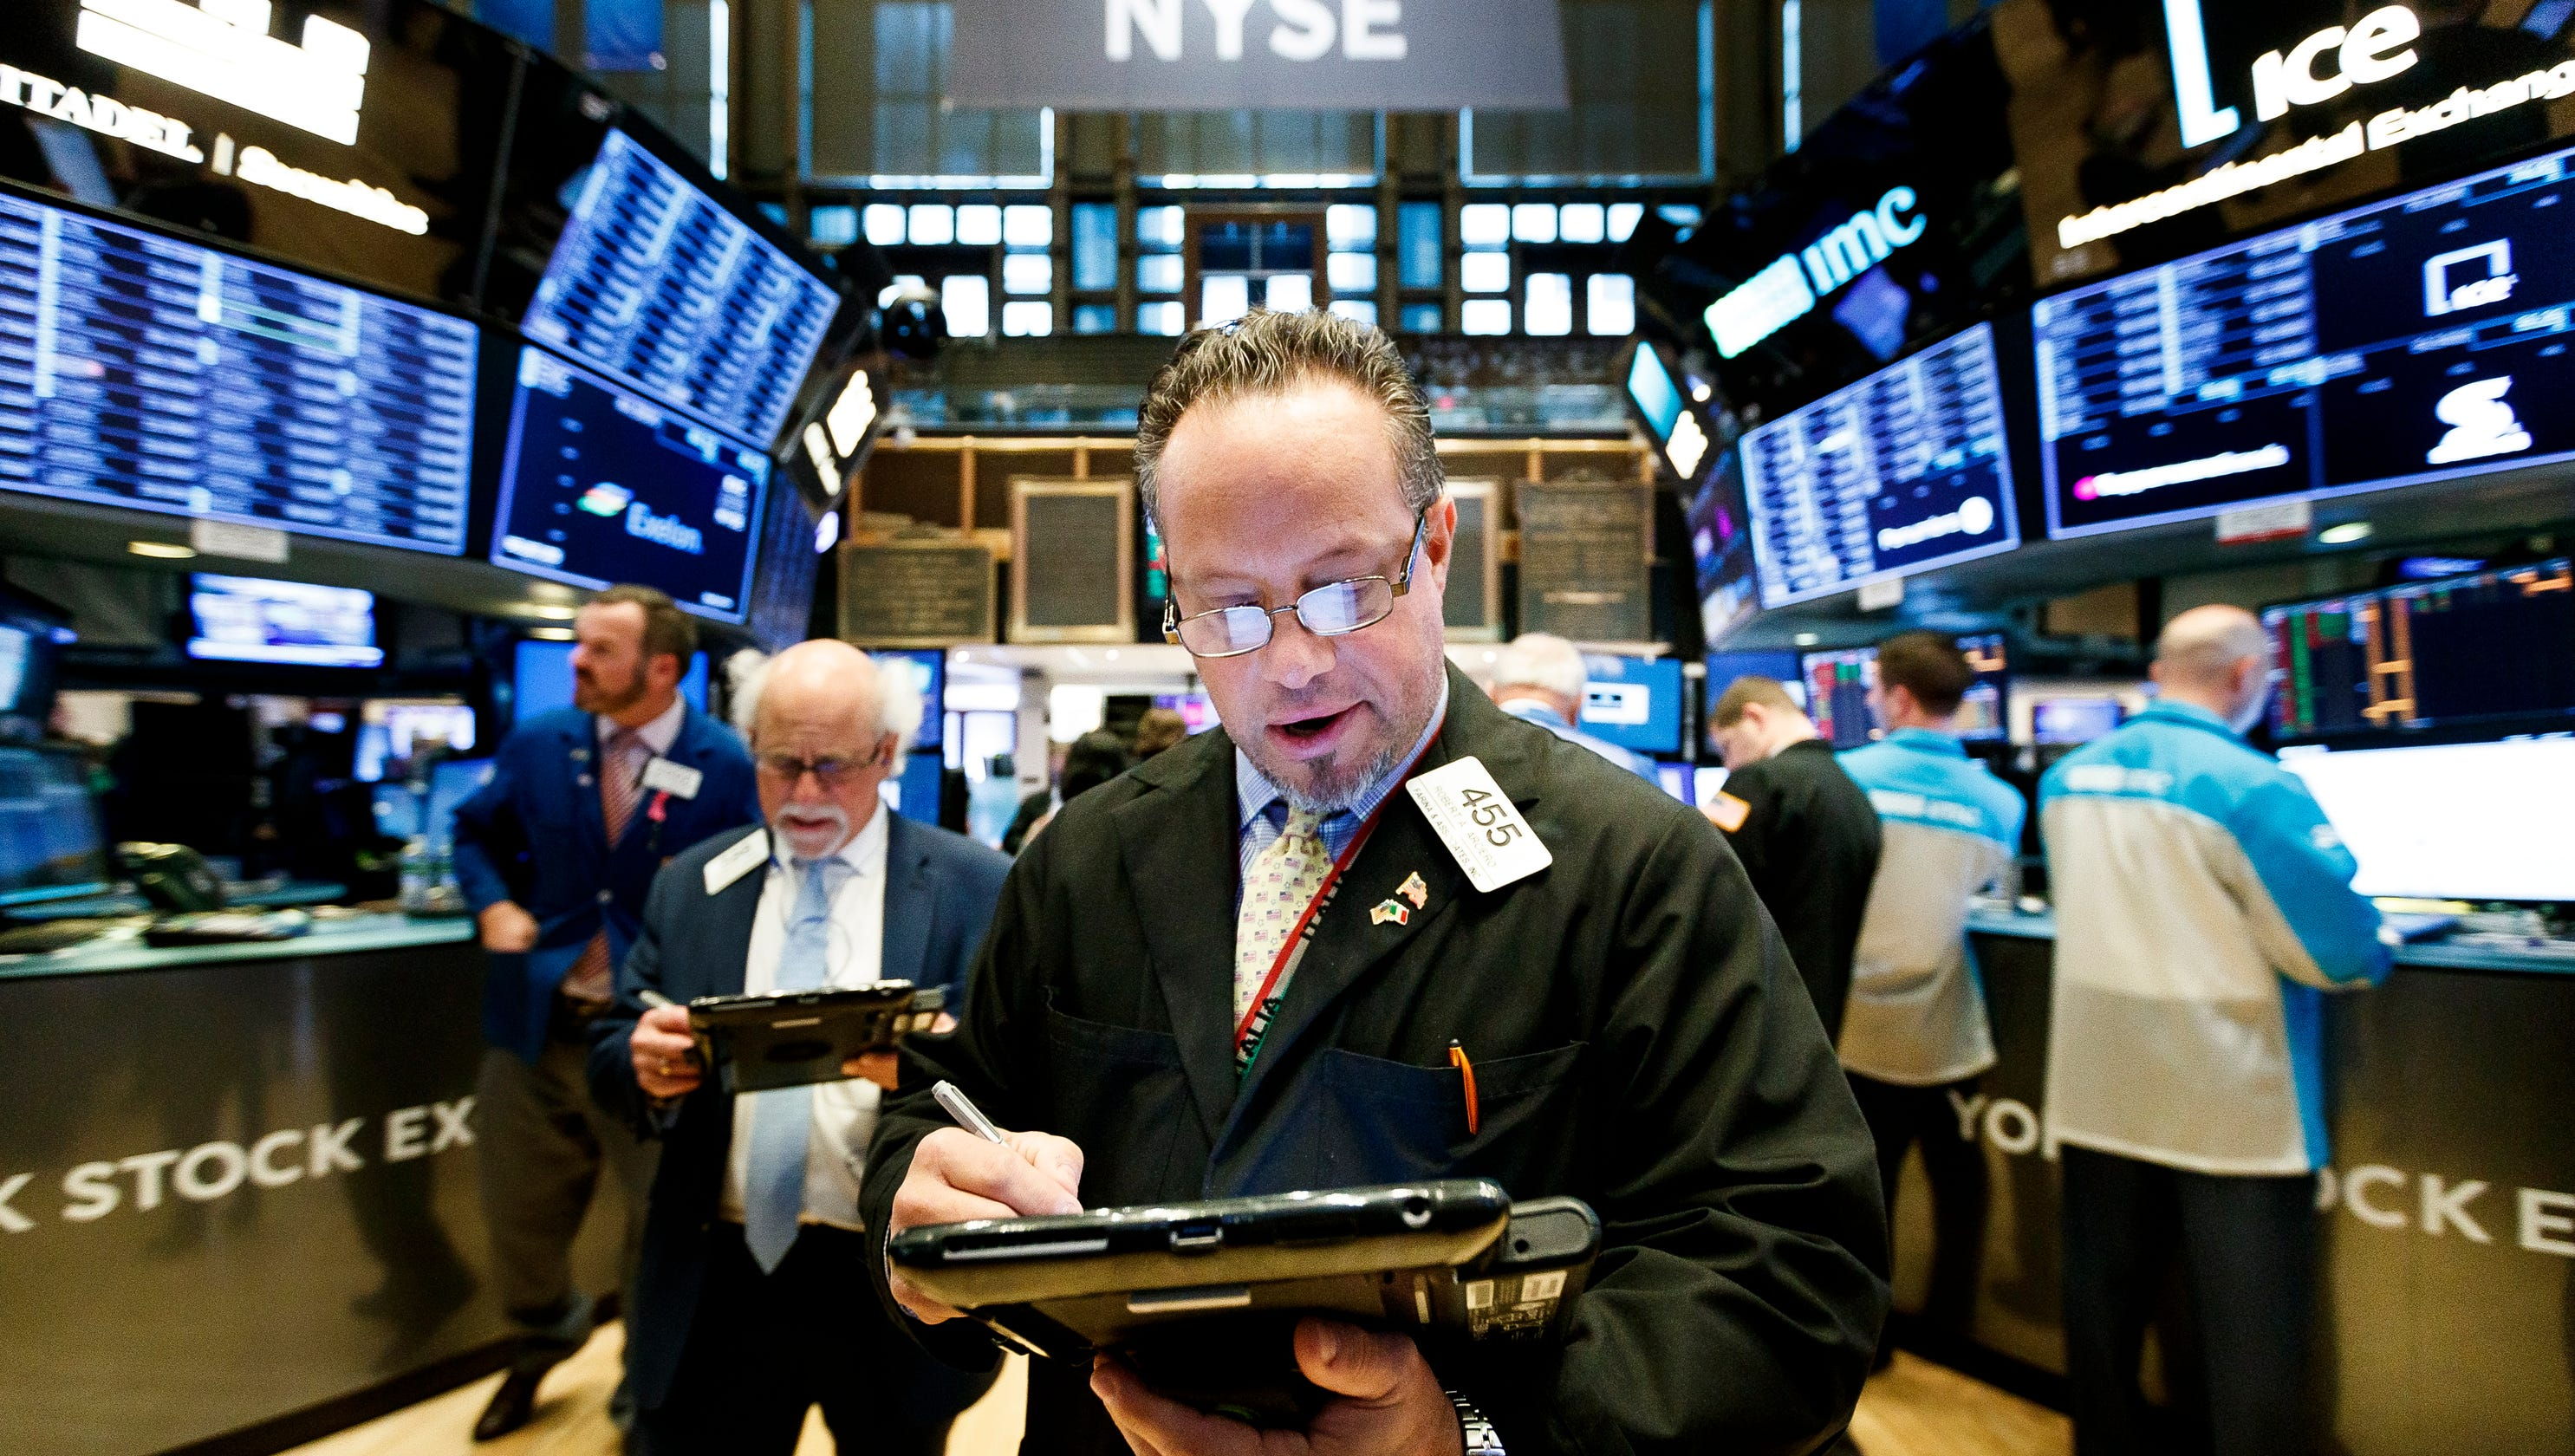 Is the stock market open New Year's Eve? Yes, for full day ...